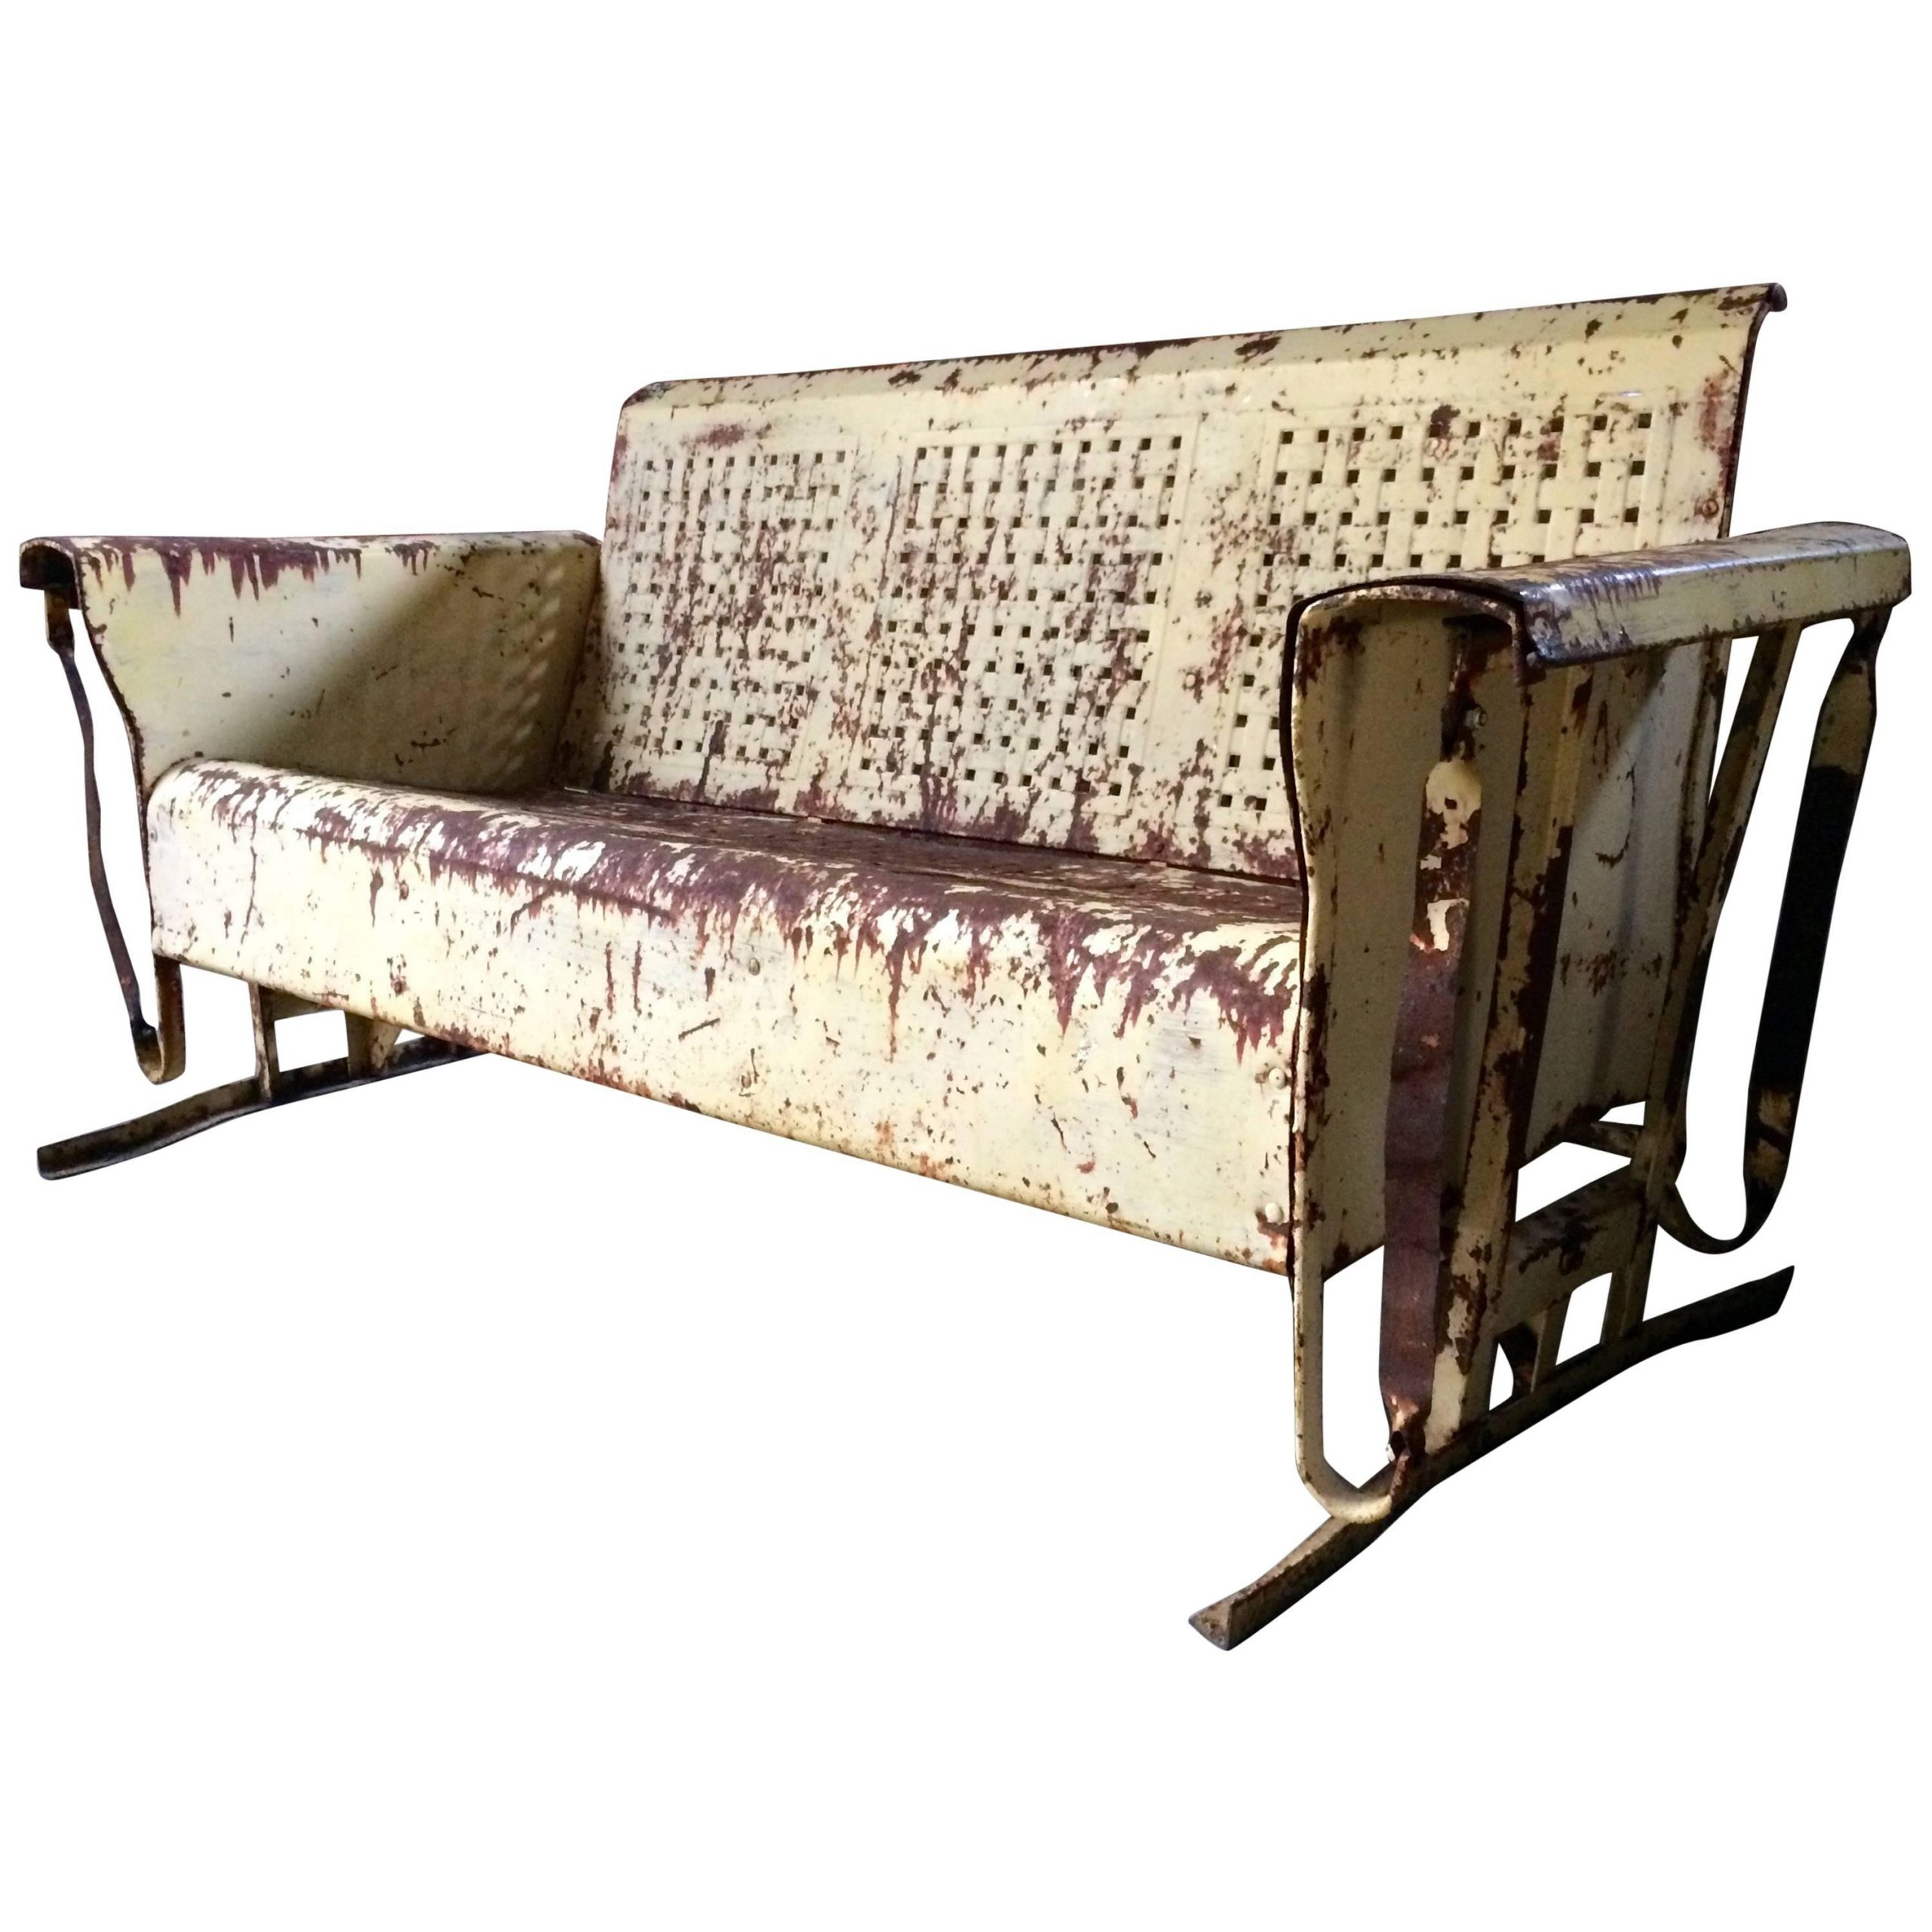 Widely Used Steel Patio Swing Glider Benches With Vintage Metal Porch Glider Garden Swing Bench French Painted (View 25 of 25)